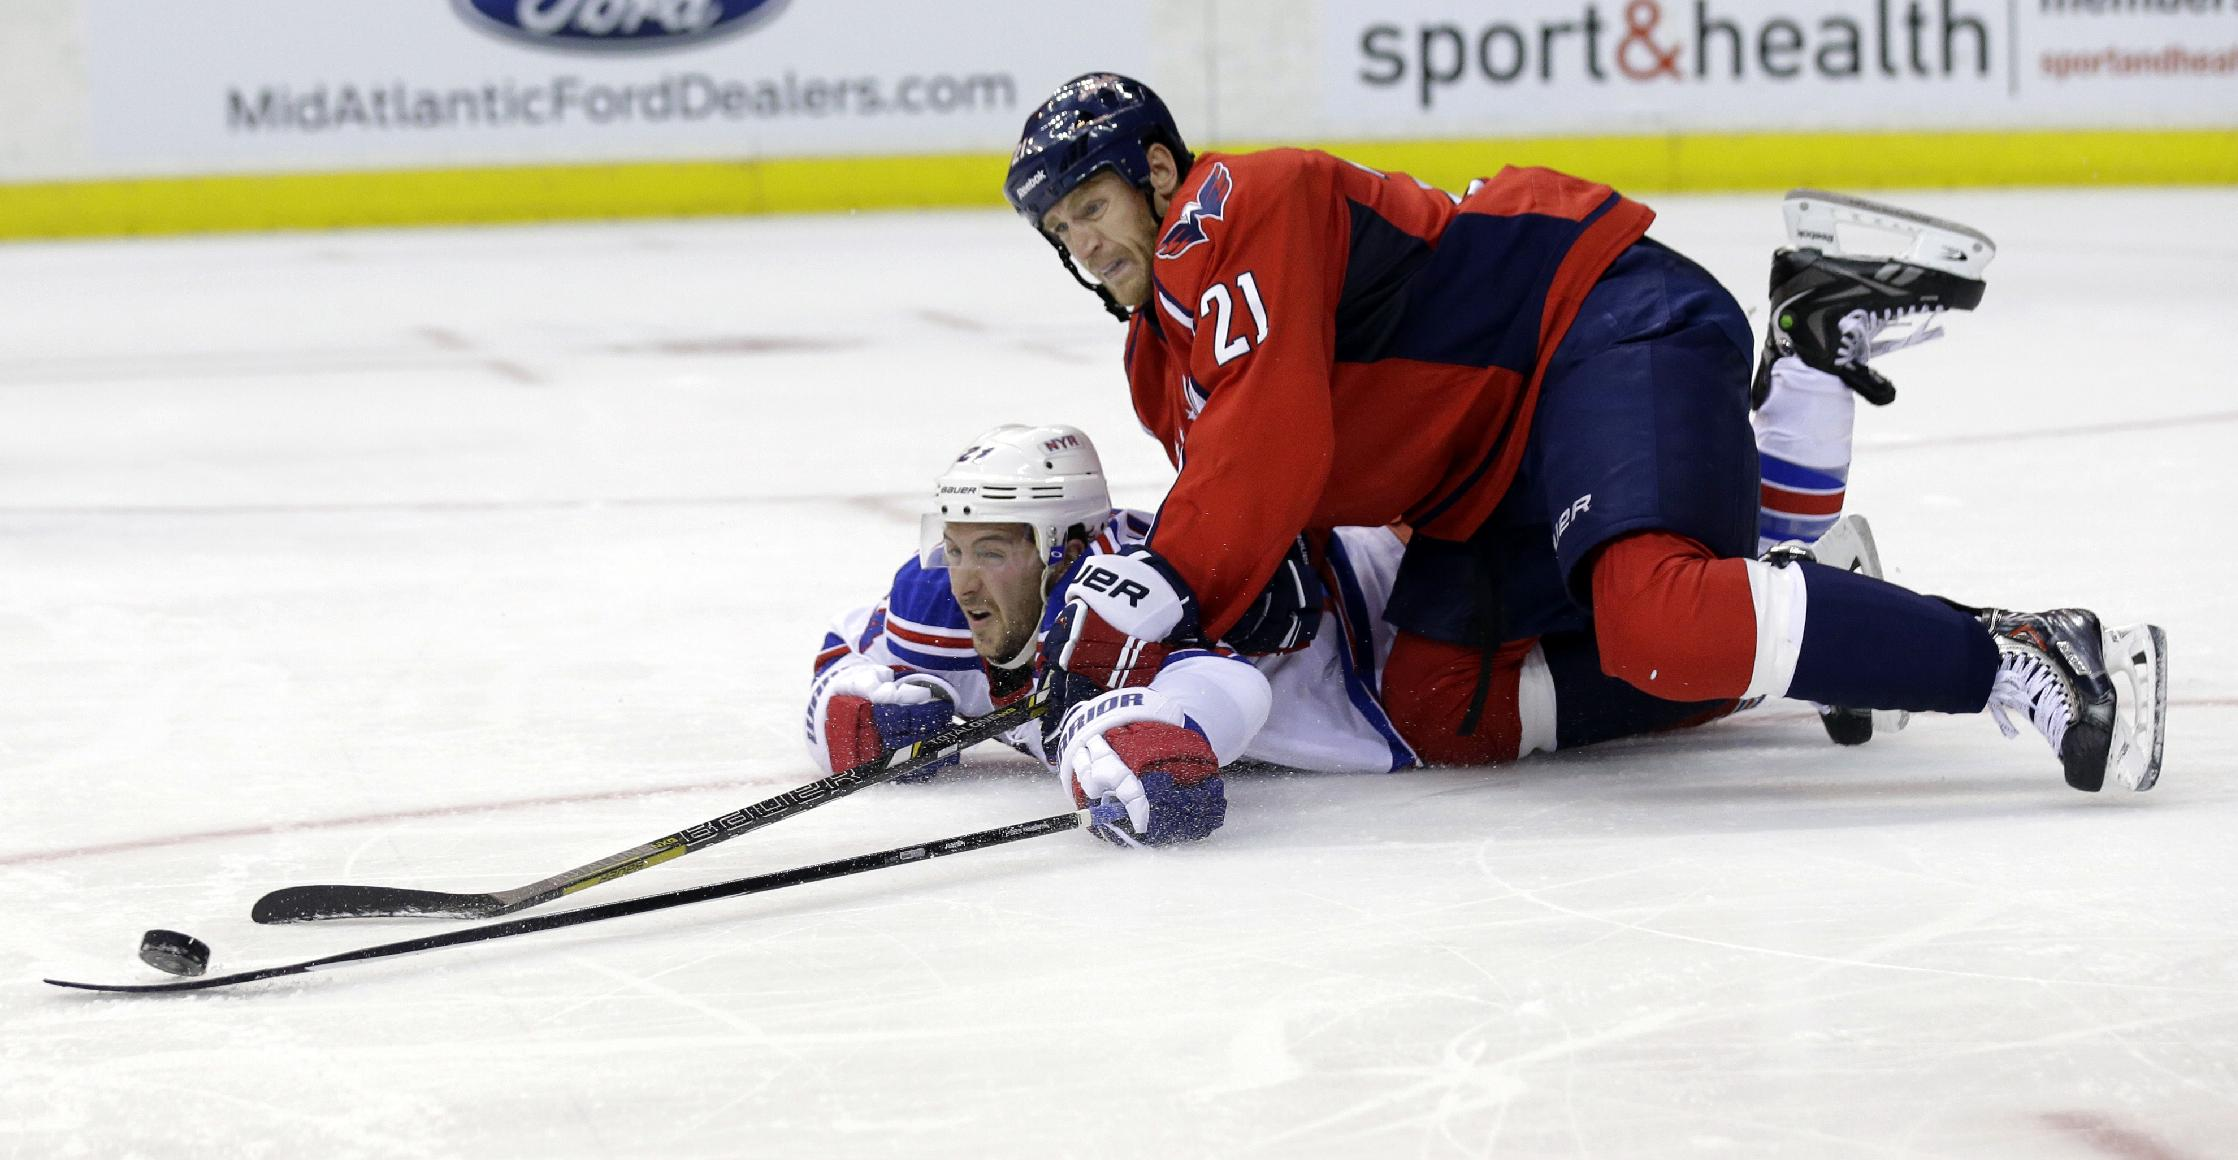 Washington Capitals center Brooks Laich (21) goes over a diving New York Rangers right wing Ryan Callahan in the second period of an NHL hockey game, Wednesday, Oct. 16, 2013, in Washington